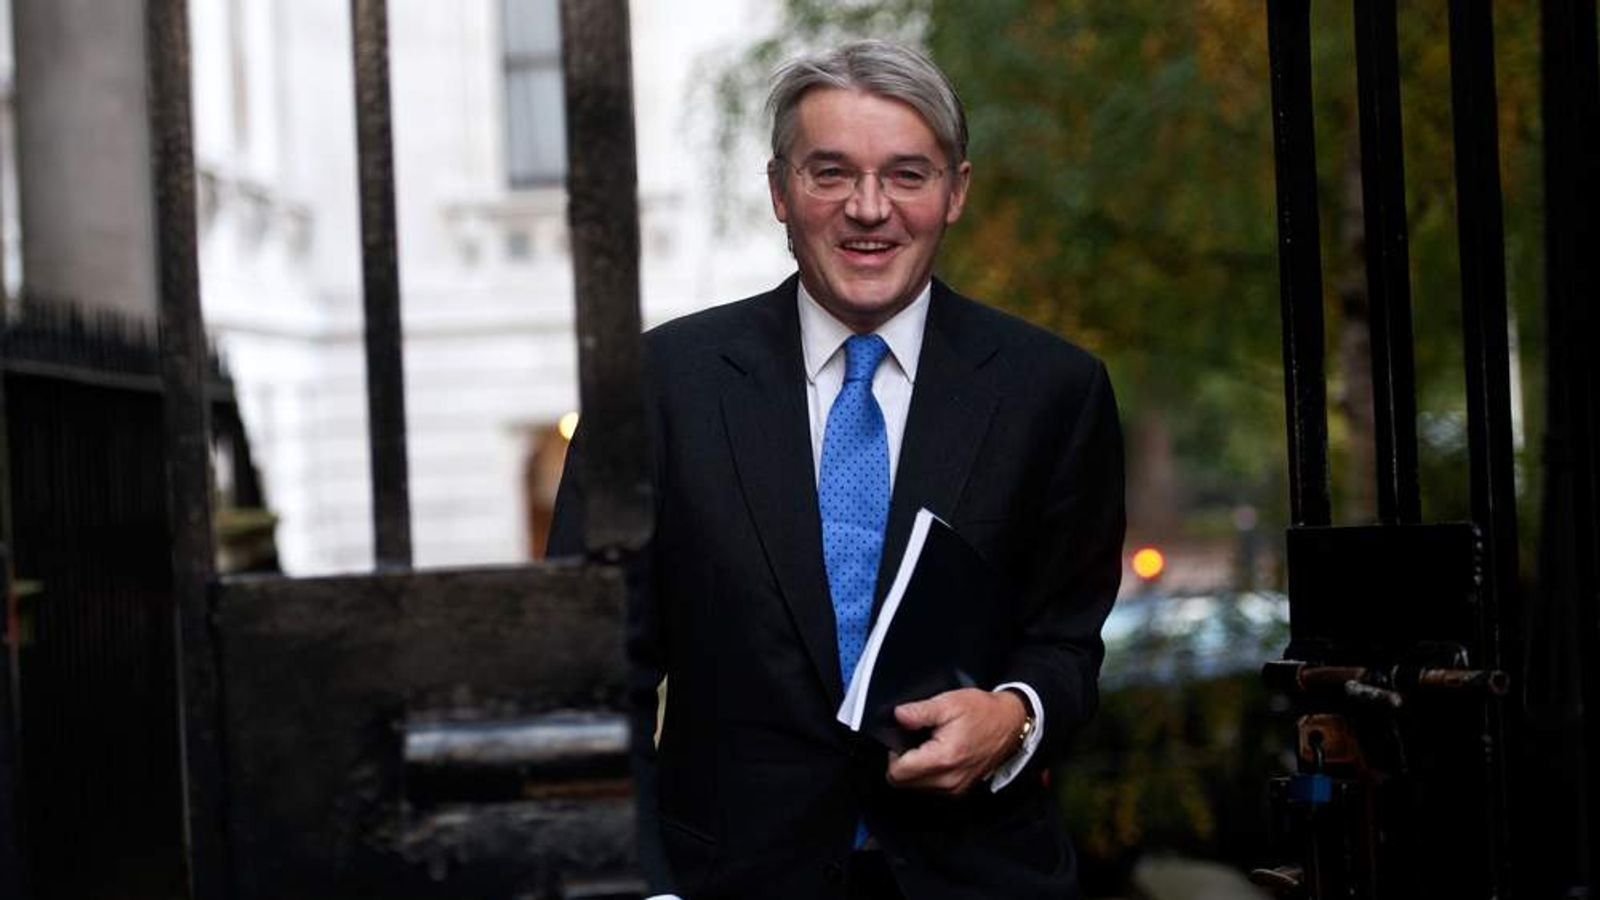 Andrew Mitchell arriving in Downing Street